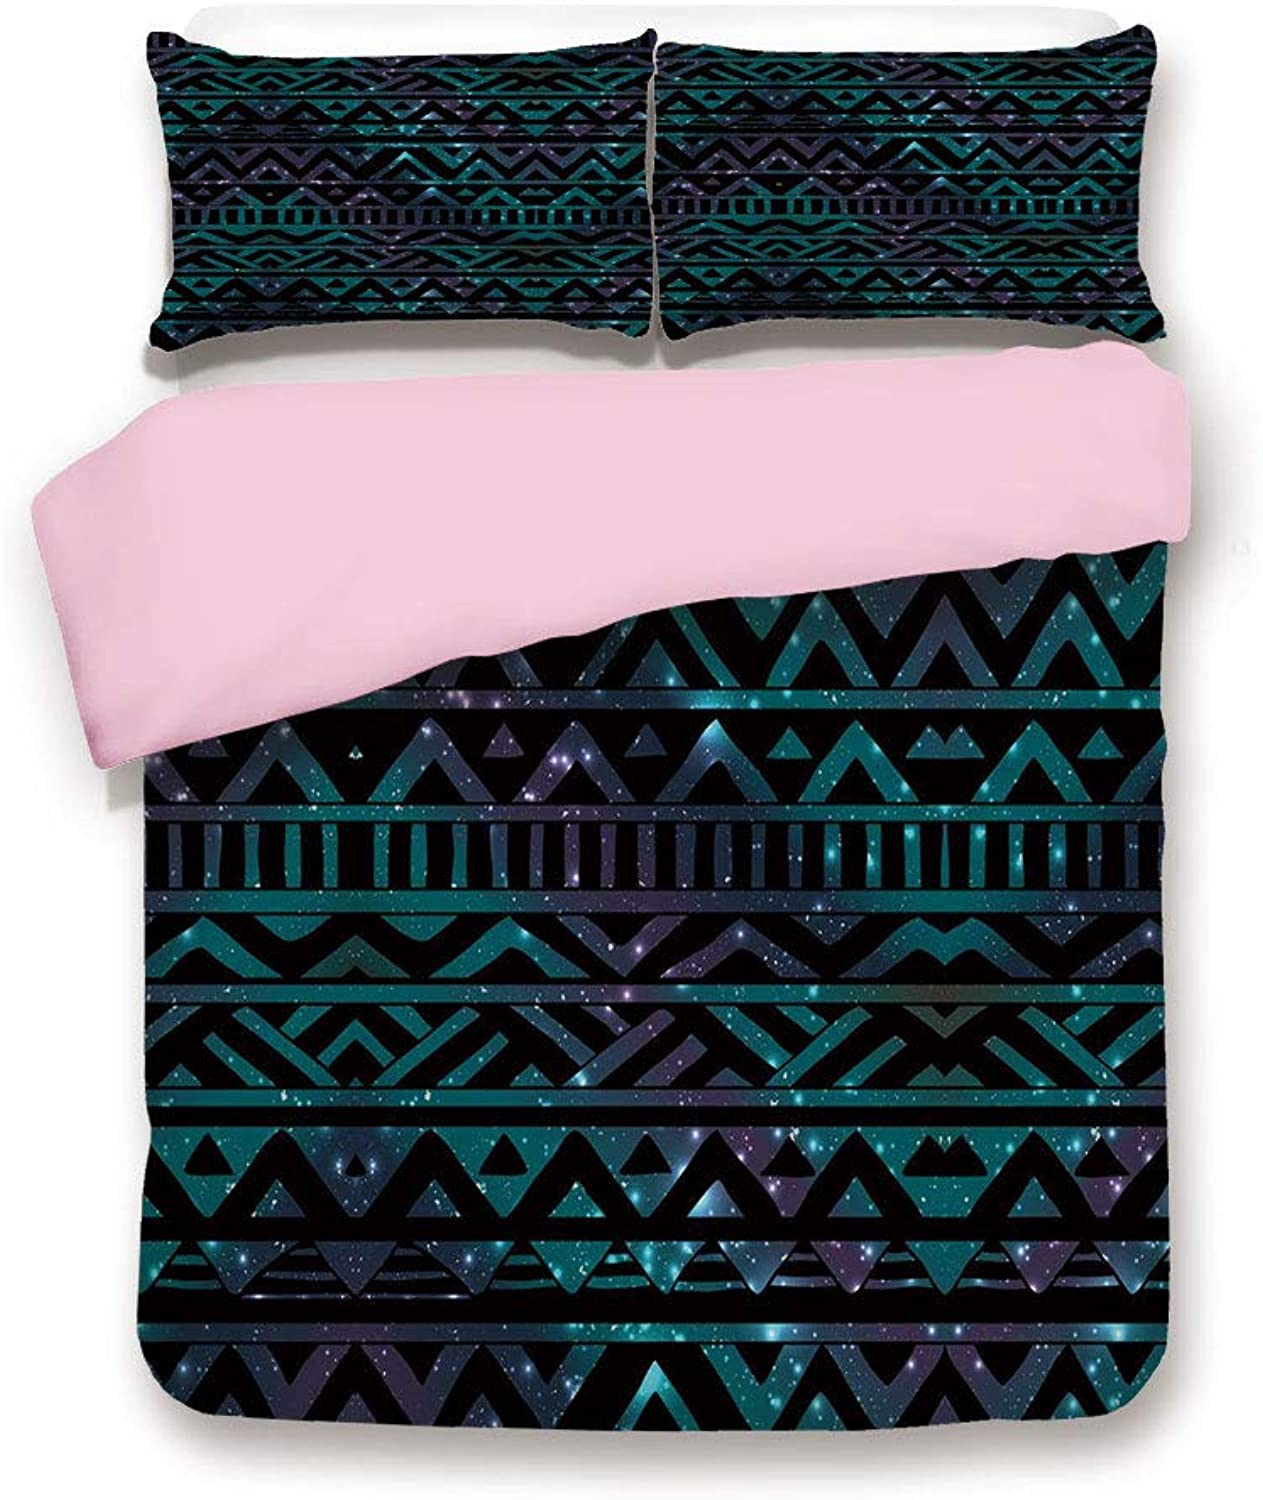 Pink Duvet Cover Set,King Size,Hand Drawn Space and Cosmos Themed Arrow and Triangle Pattern Vintage Aztec Motifs,Decorative 3 Piece Bedding Set with 2 Pillow Sham,Best Gift For Girls Women,Multicolor